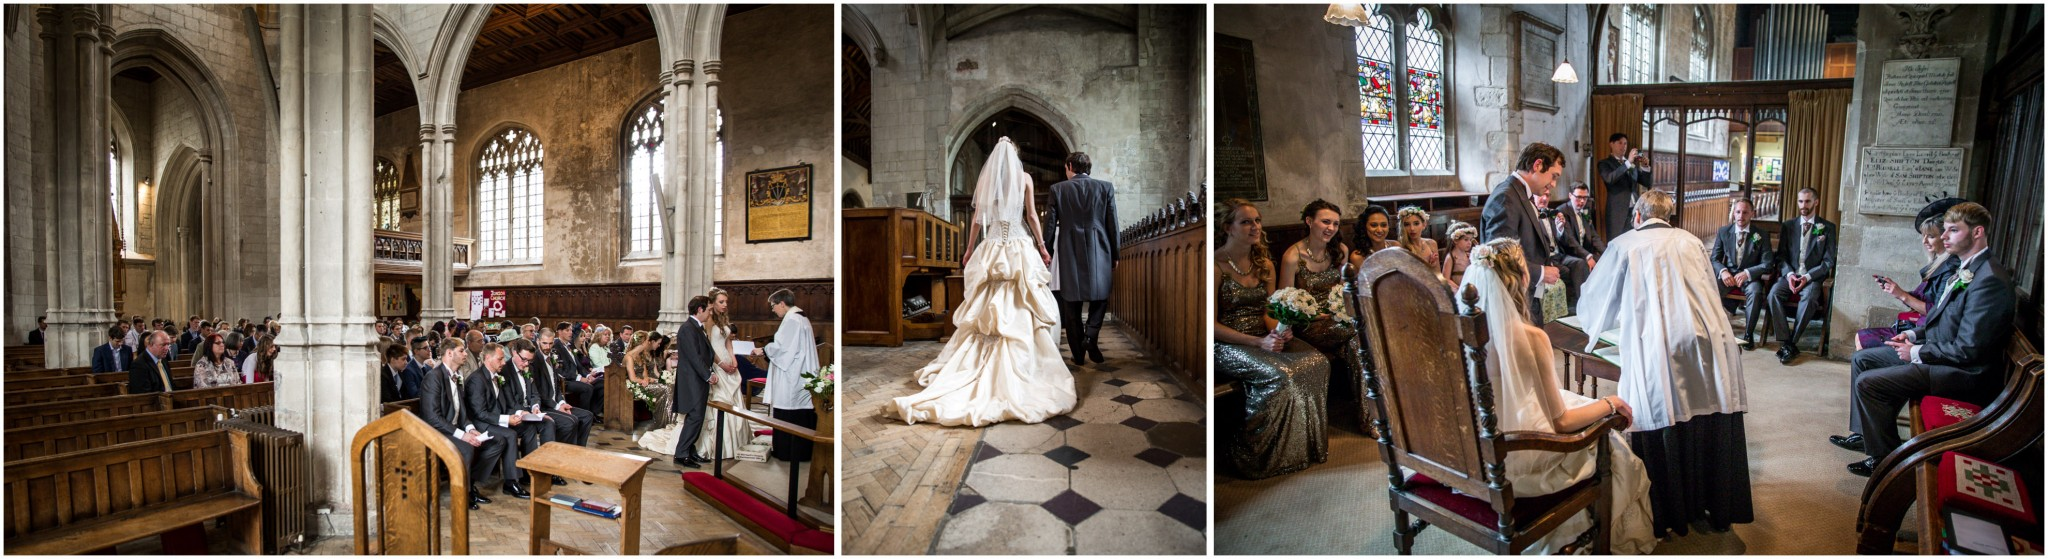 Highfield Park Wedding Photography before signing the register